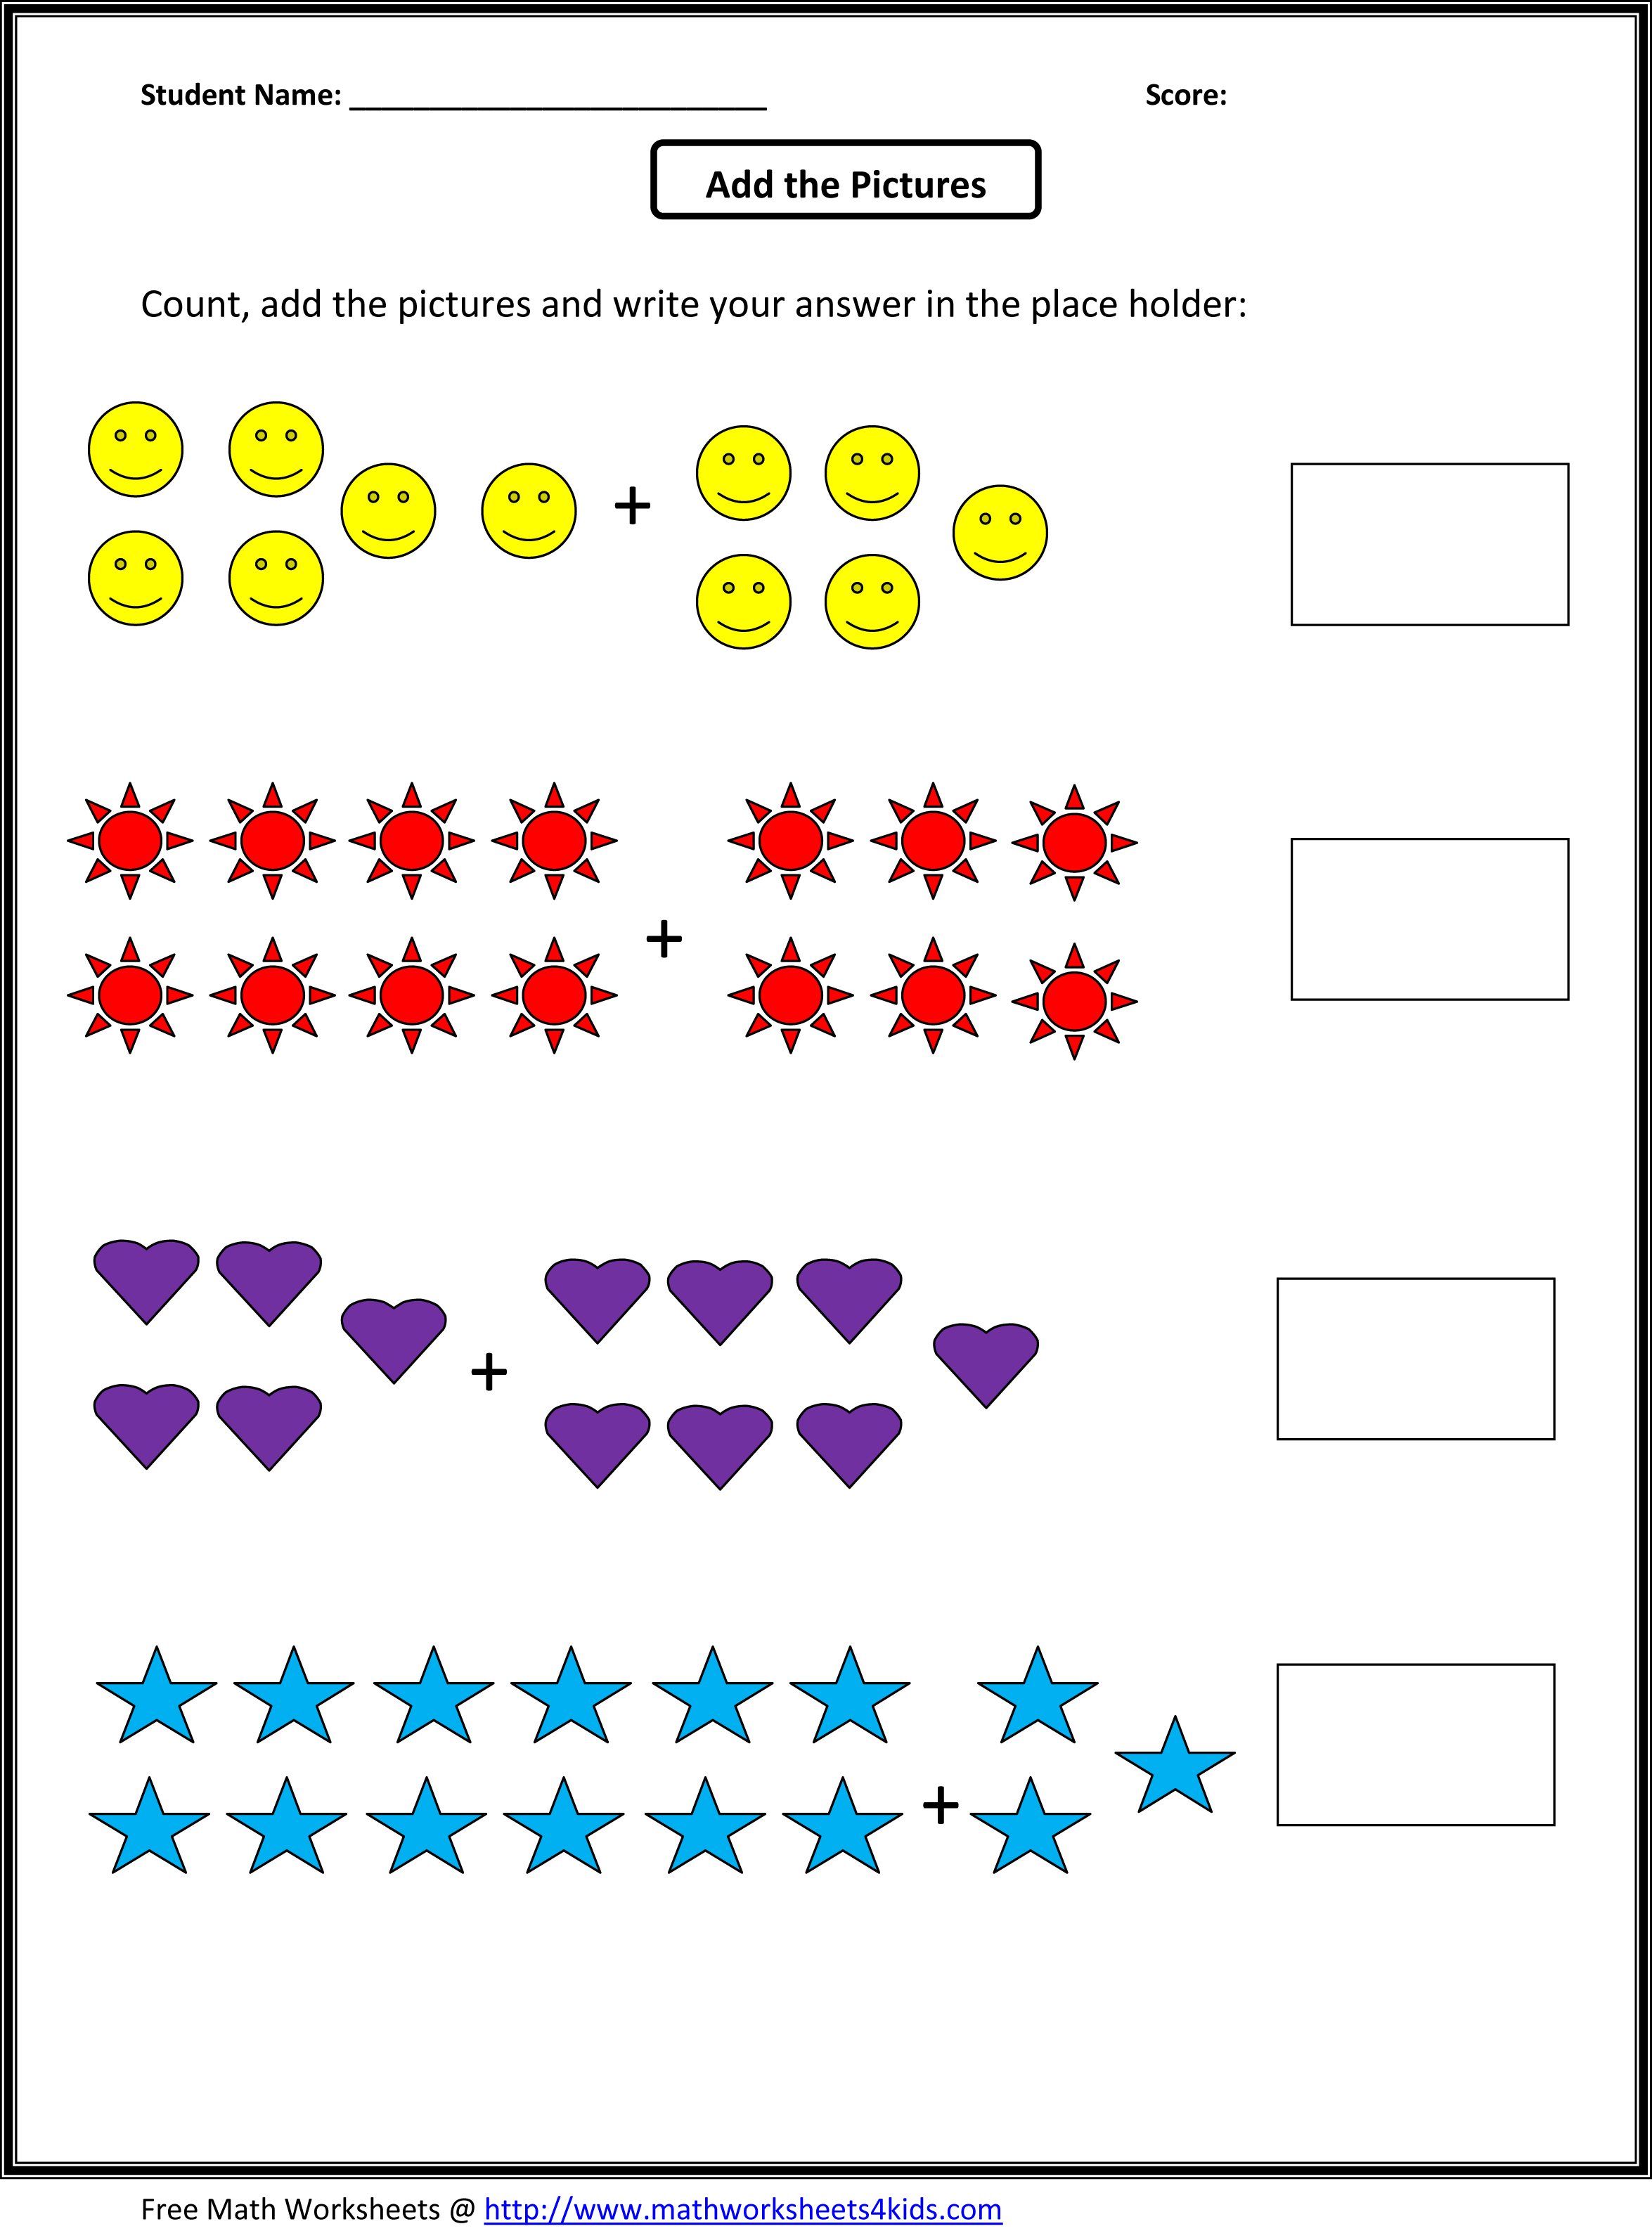 Weirdmailus  Gorgeous Grade  Maths Worksheet  Reocurent With Magnificent Math Worksheets For St Grade Free  Reocurent With Delectable Federalism Worksheets Also Pet Worksheets In Addition Fewer Vs Less Worksheet And Free Number Tracing Worksheets  As Well As Free Times Table Worksheets Additionally Tree Ring Worksheet From Reocurentcom With Weirdmailus  Magnificent Grade  Maths Worksheet  Reocurent With Delectable Math Worksheets For St Grade Free  Reocurent And Gorgeous Federalism Worksheets Also Pet Worksheets In Addition Fewer Vs Less Worksheet From Reocurentcom